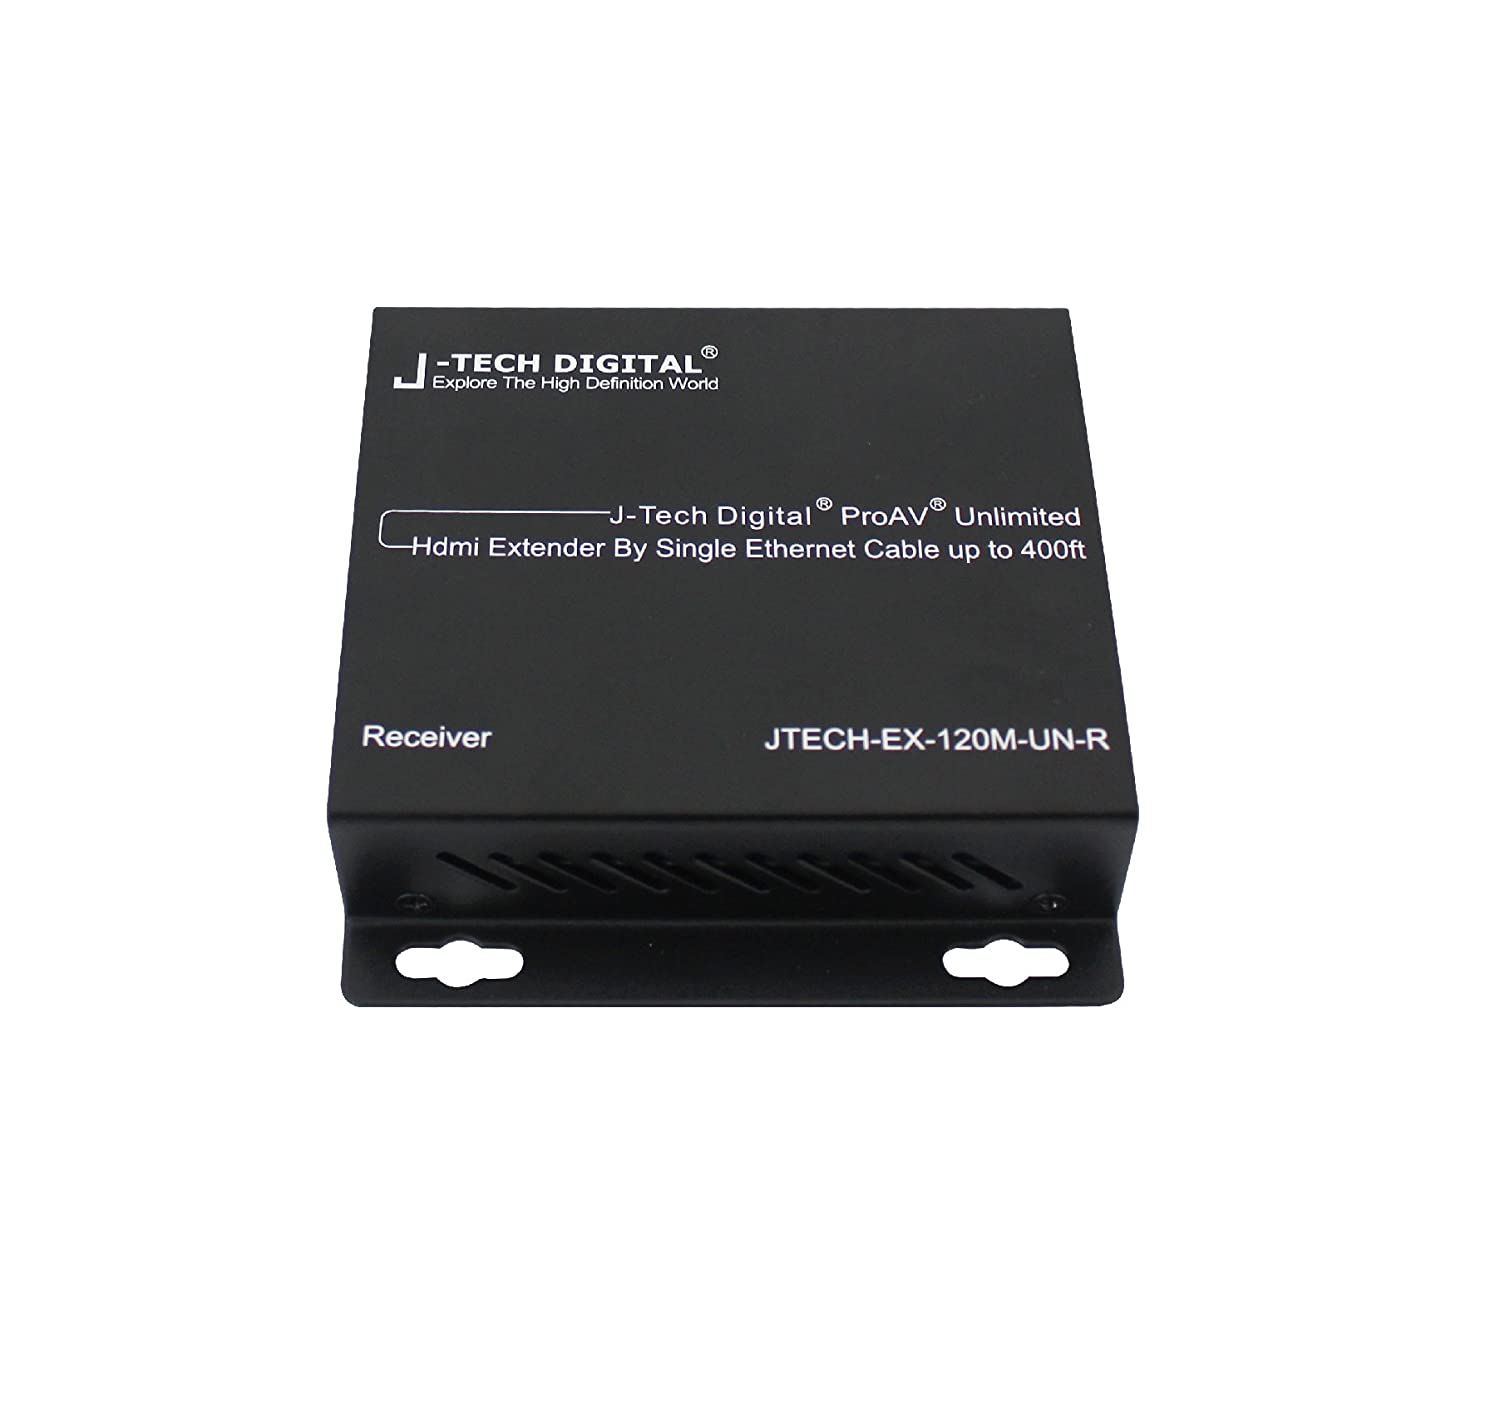 J tech digital proav unlimited n x n hdmi over ethernet cat6 free lifetime technical sup port from the manufacture and free 1 year manufacturer warranty from j tech digital sciox Images